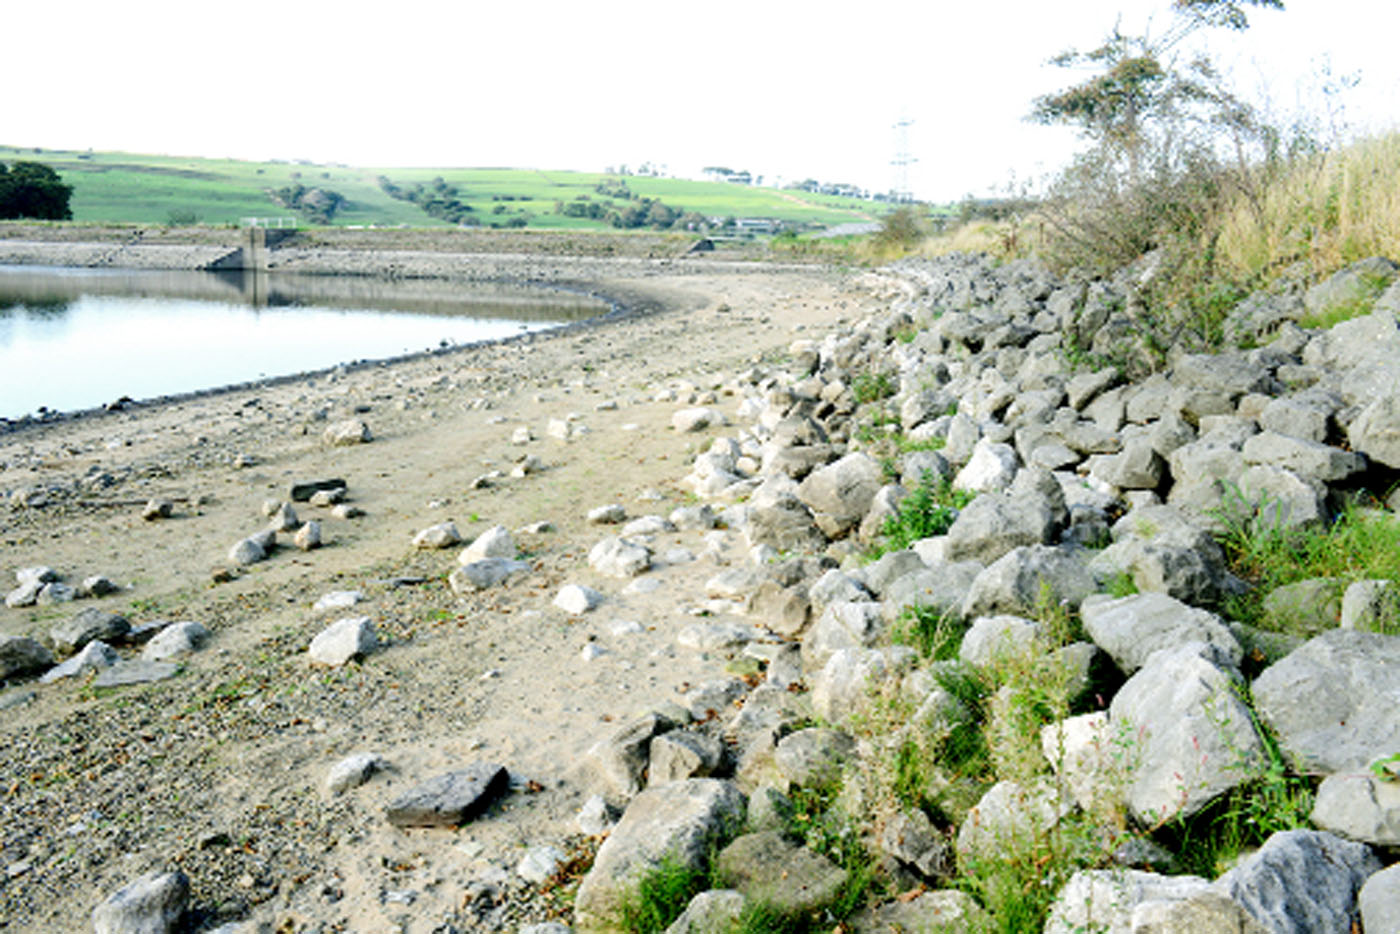 Charity warns of East Lancs open water dangers